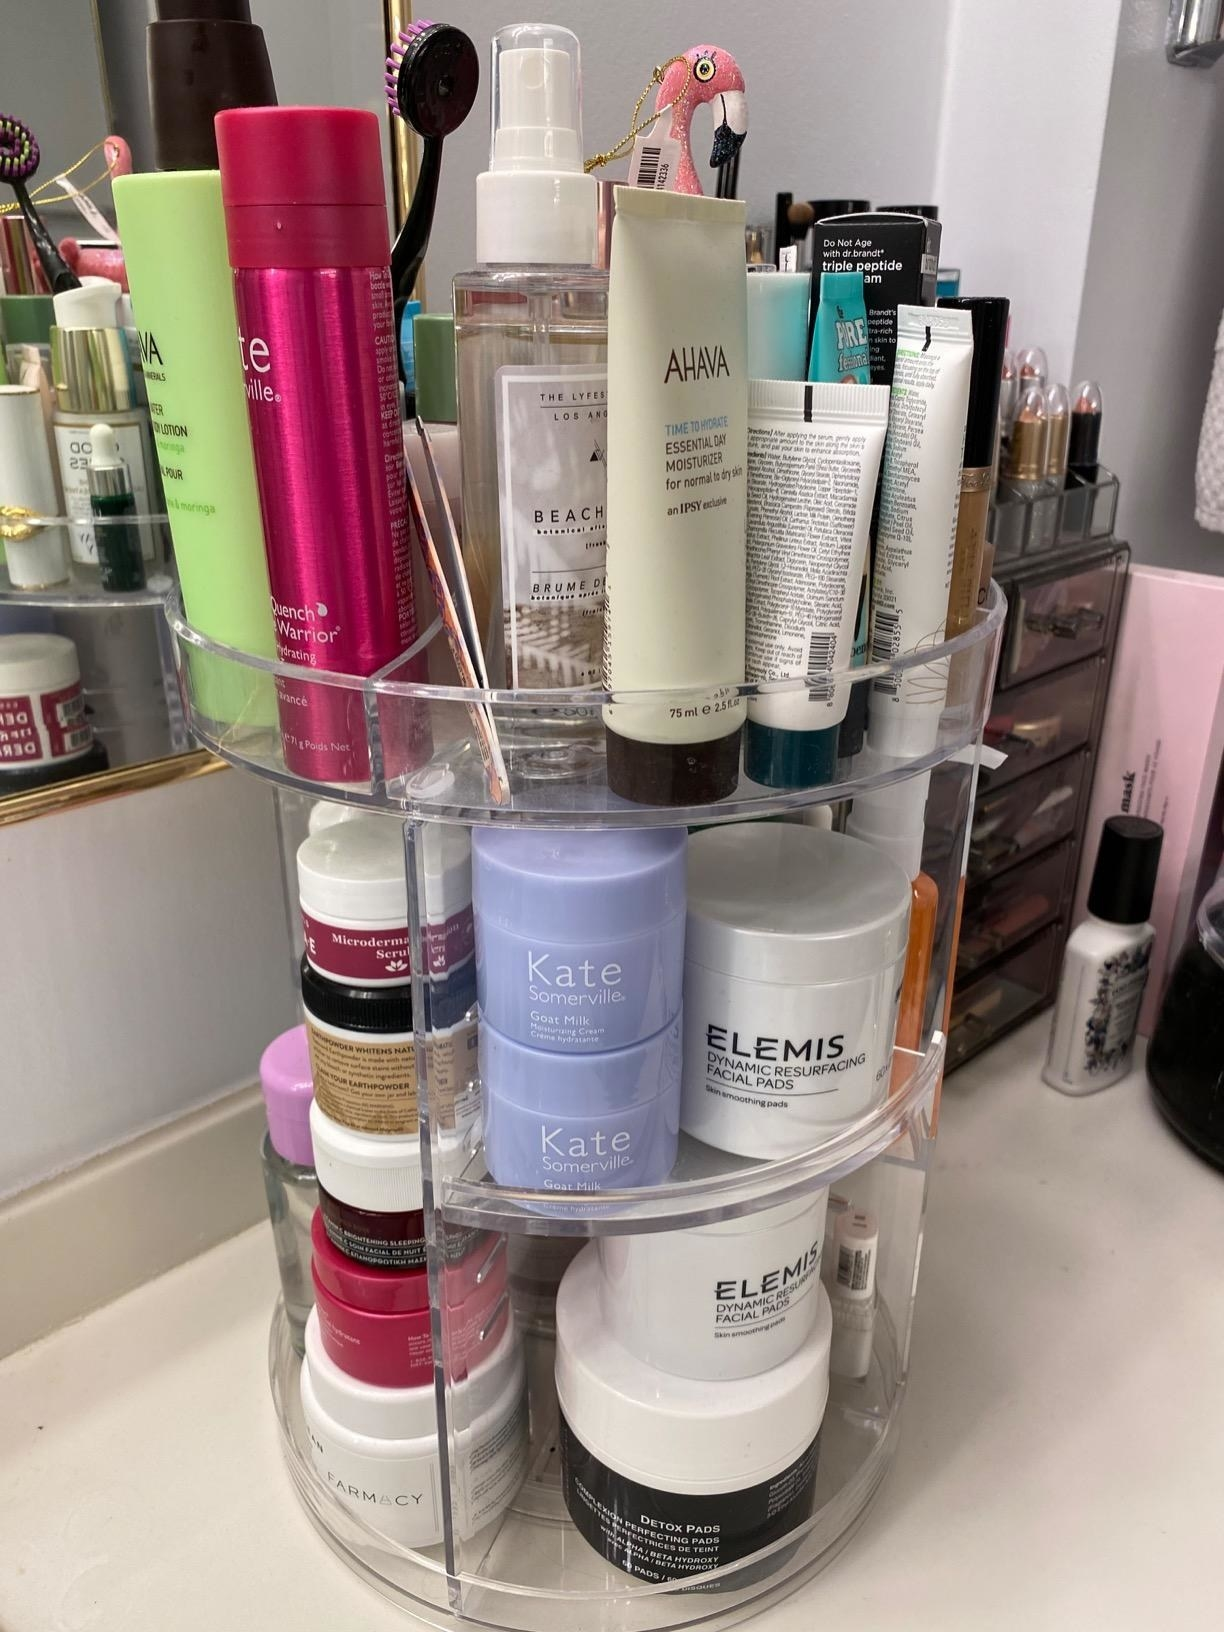 A reviewer's photo of the three-tier rotating organizer holding various skin, face, and hair products